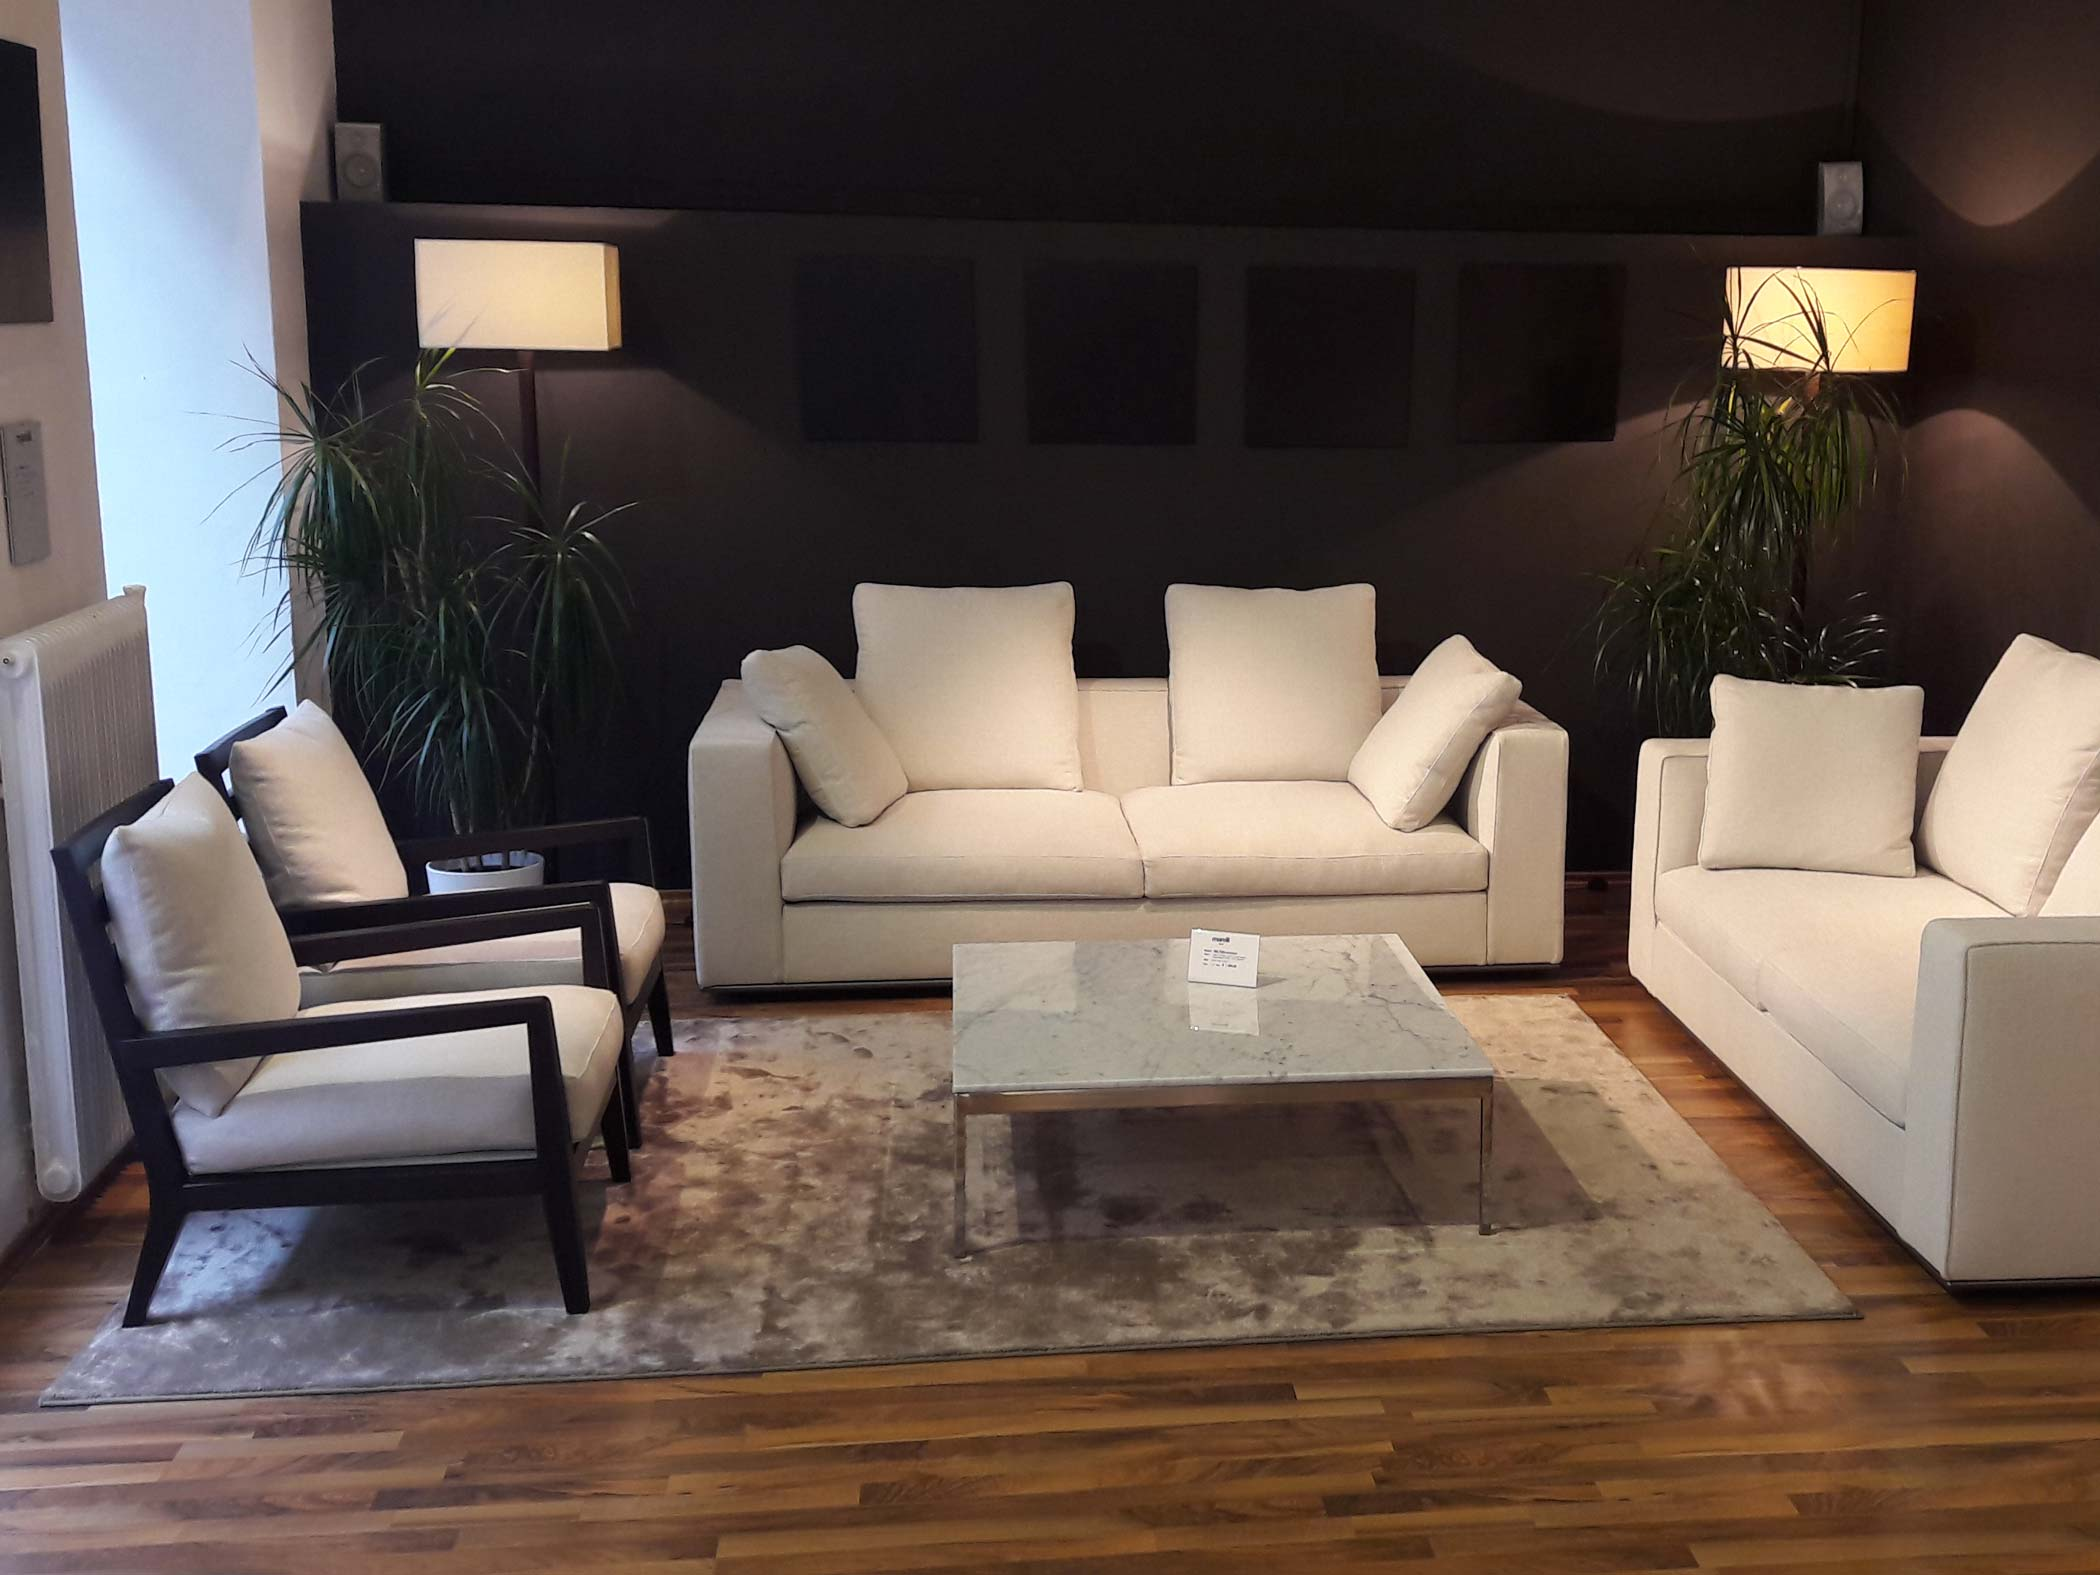 Linear Sofas, Marelli Outlet